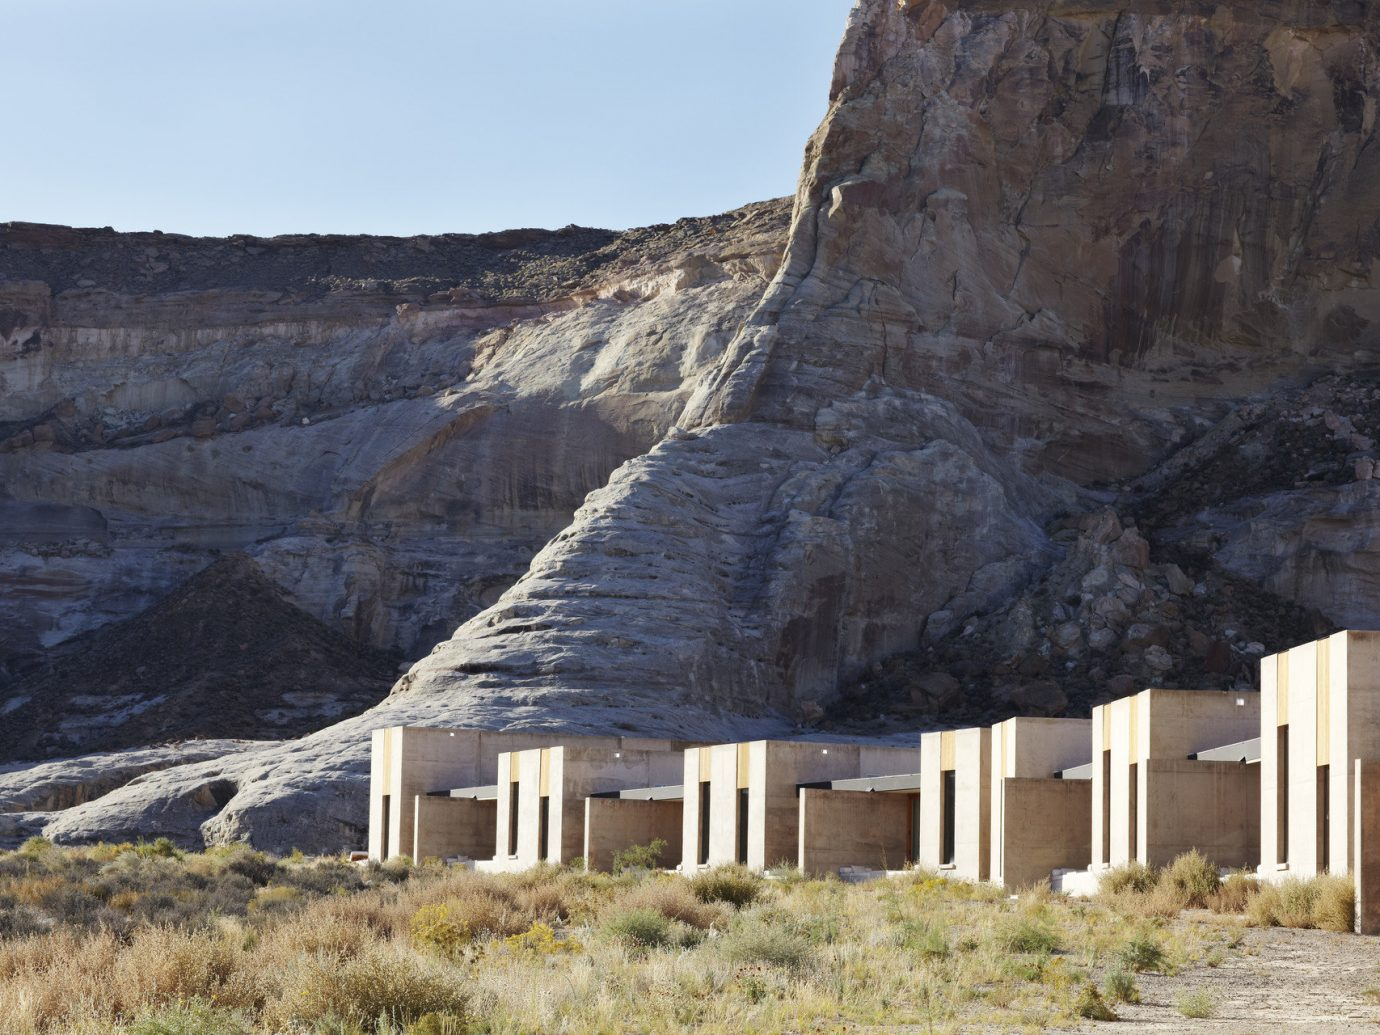 Hotels mountain grass outdoor Nature sky valley rock cliff badlands canyon geology terrain landscape quarry hut material stone hillside